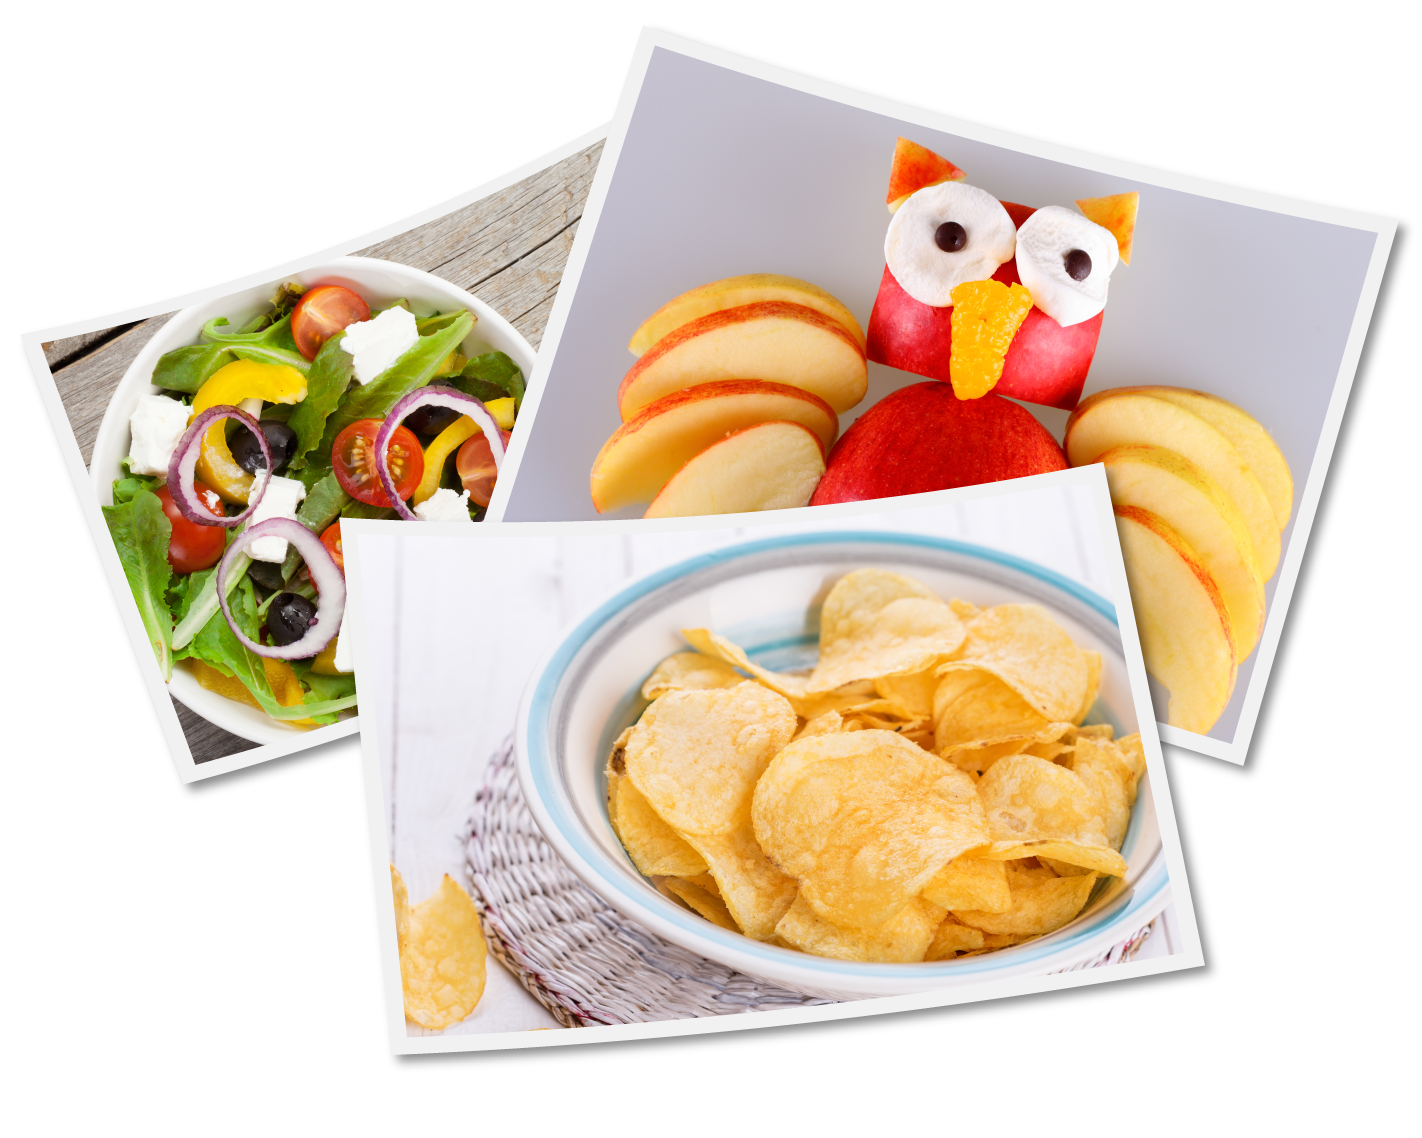 images of snacks